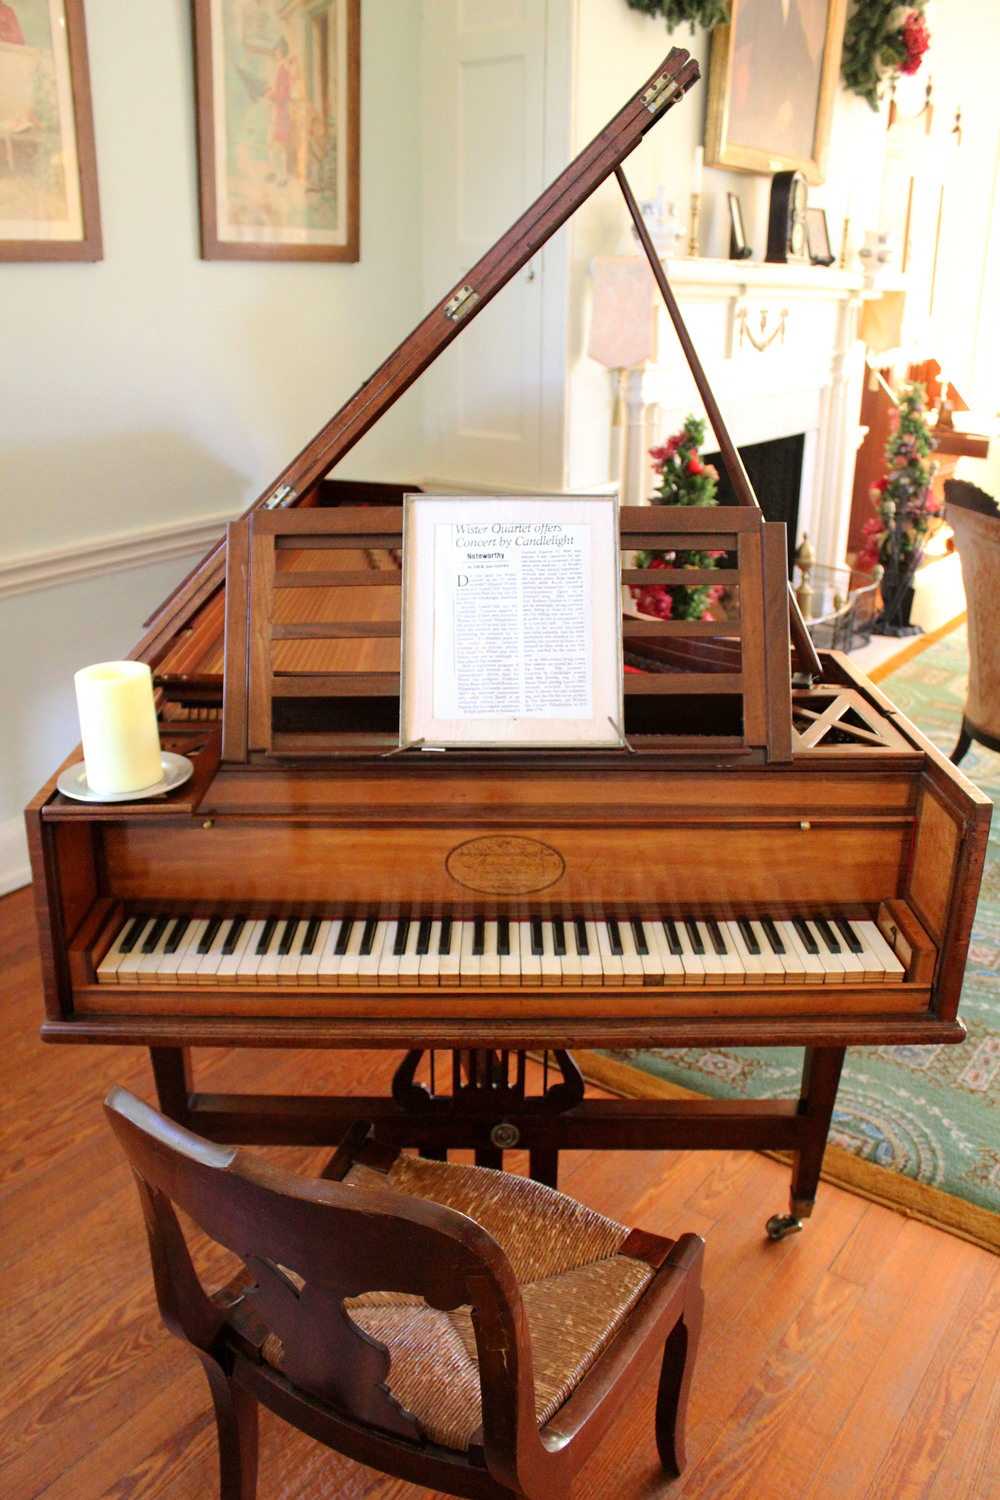 1808 pianoforte. Music was part of life at Laurel Hill; and continues today through the annualConcerts by Candlelightseries. Photo by Samantha Madera, 2012.